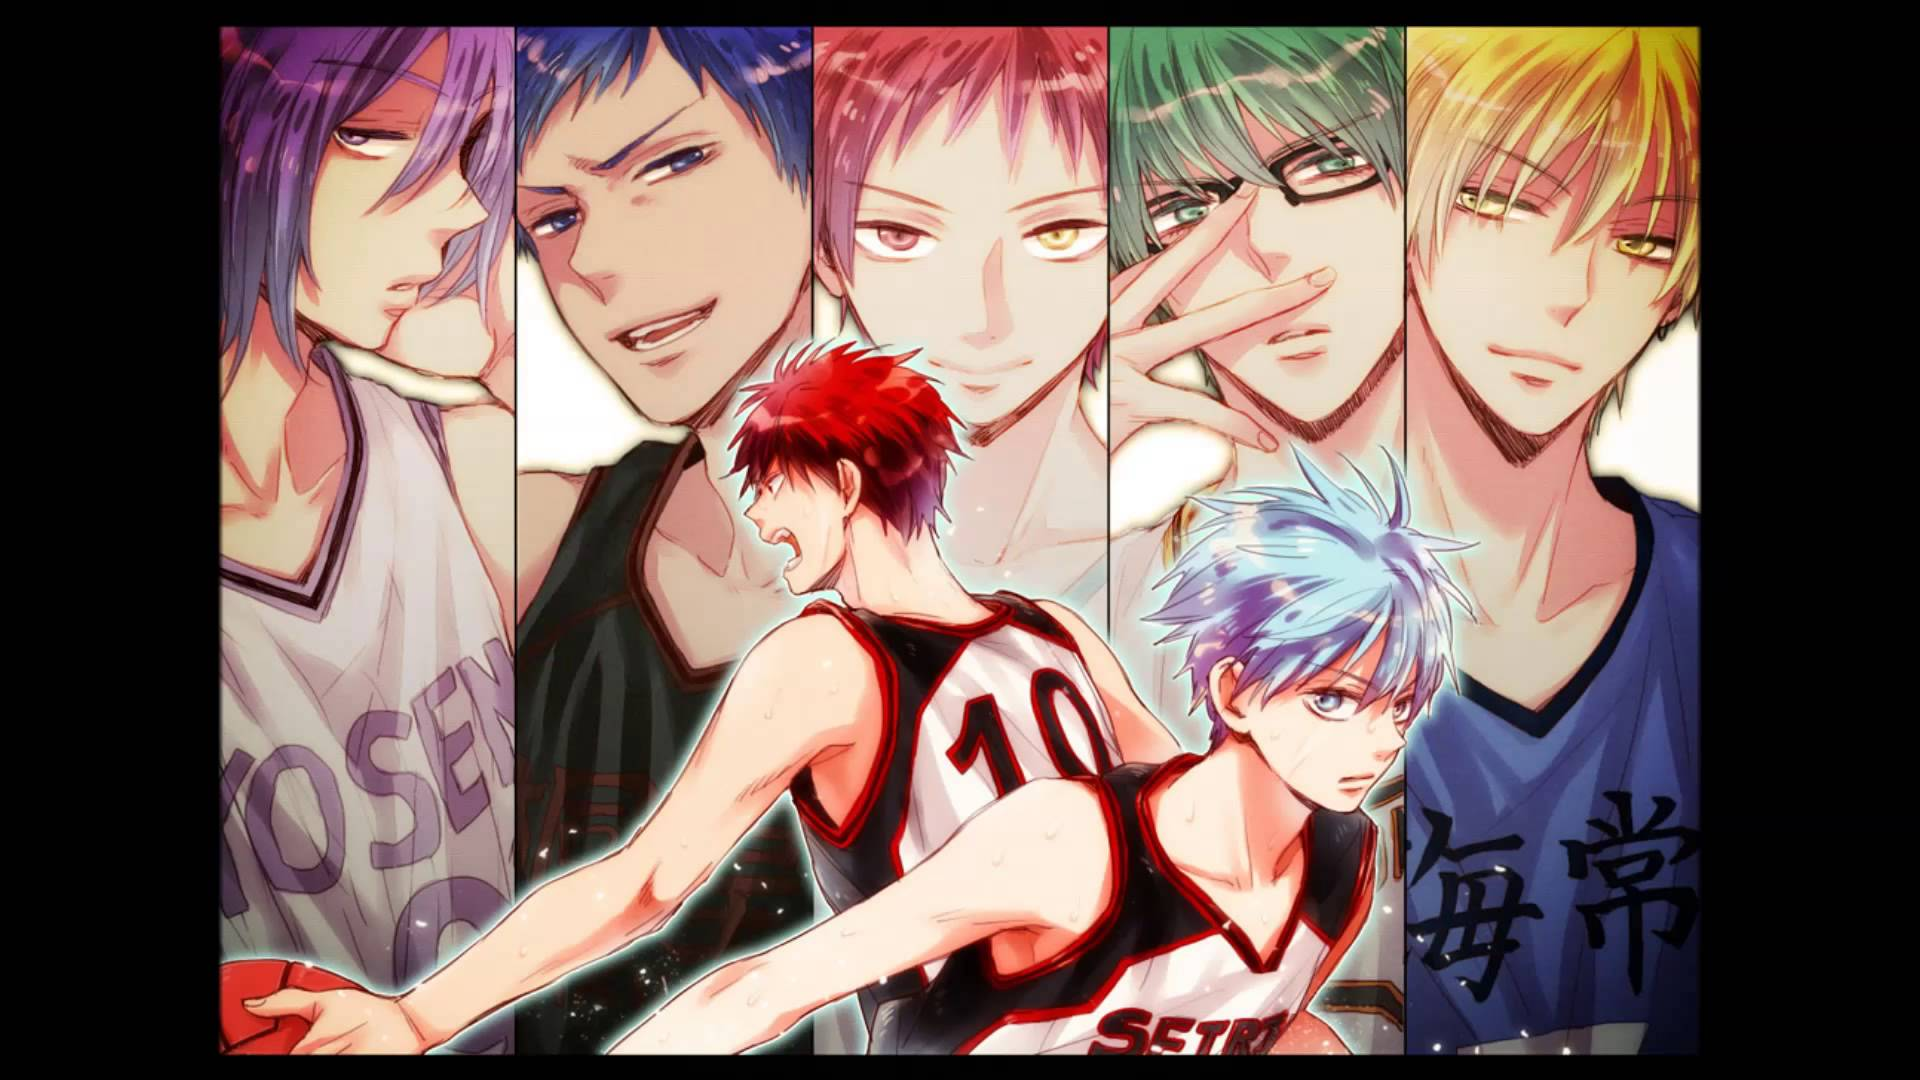 Kuroko And Kagami Wallpaper High Quality Resolution Nqk